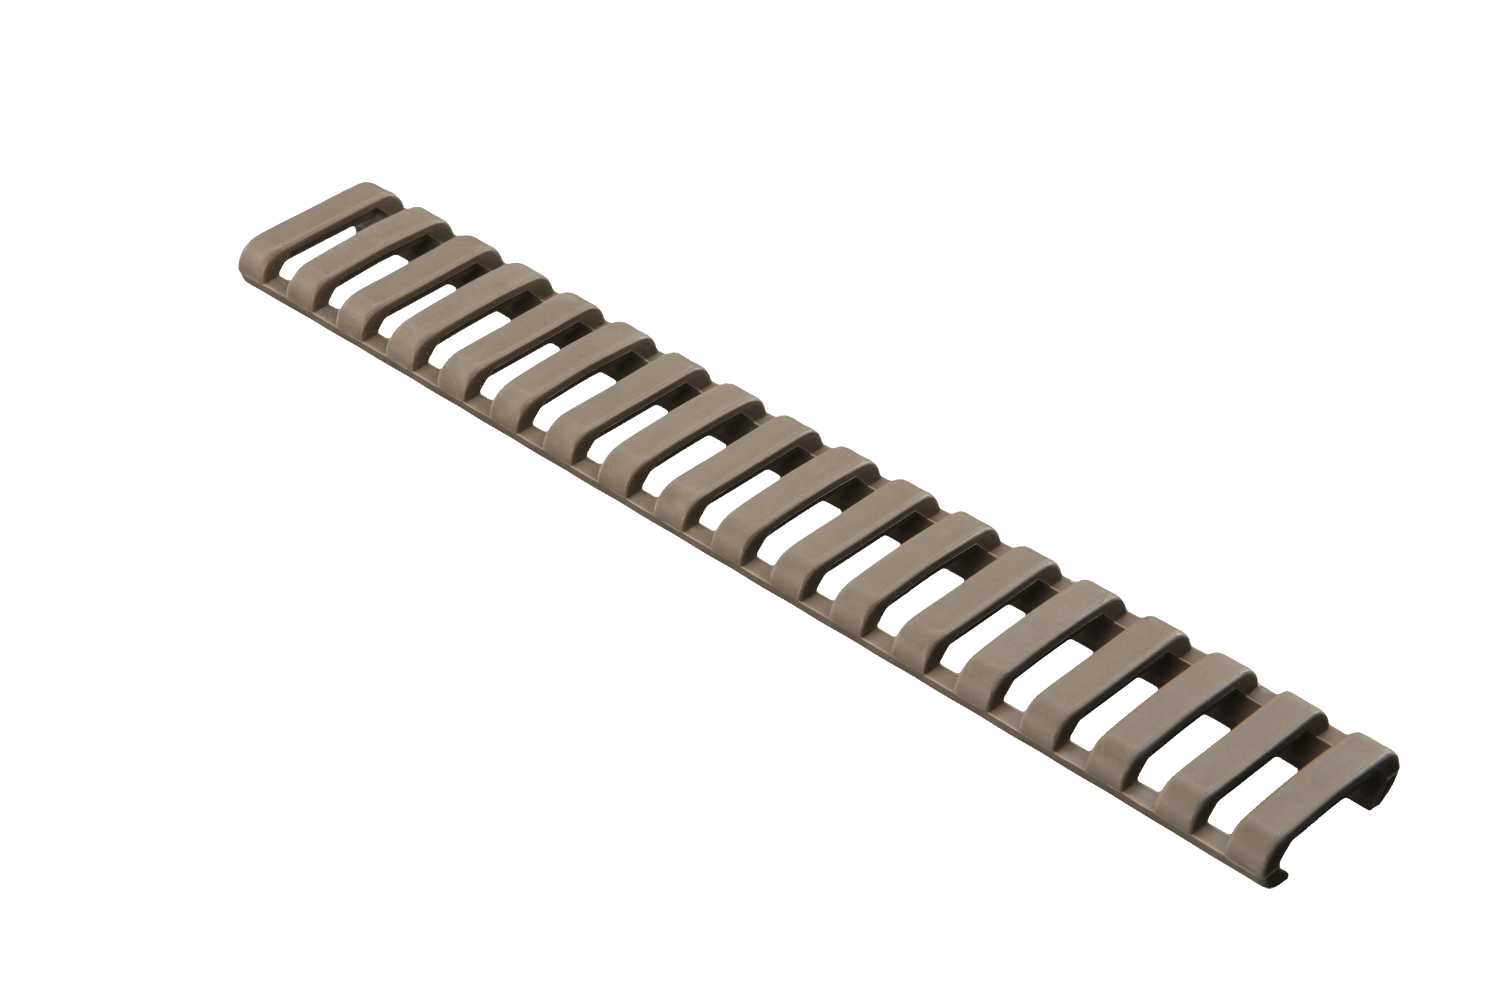 Magpul Ladder Style Rail Protector